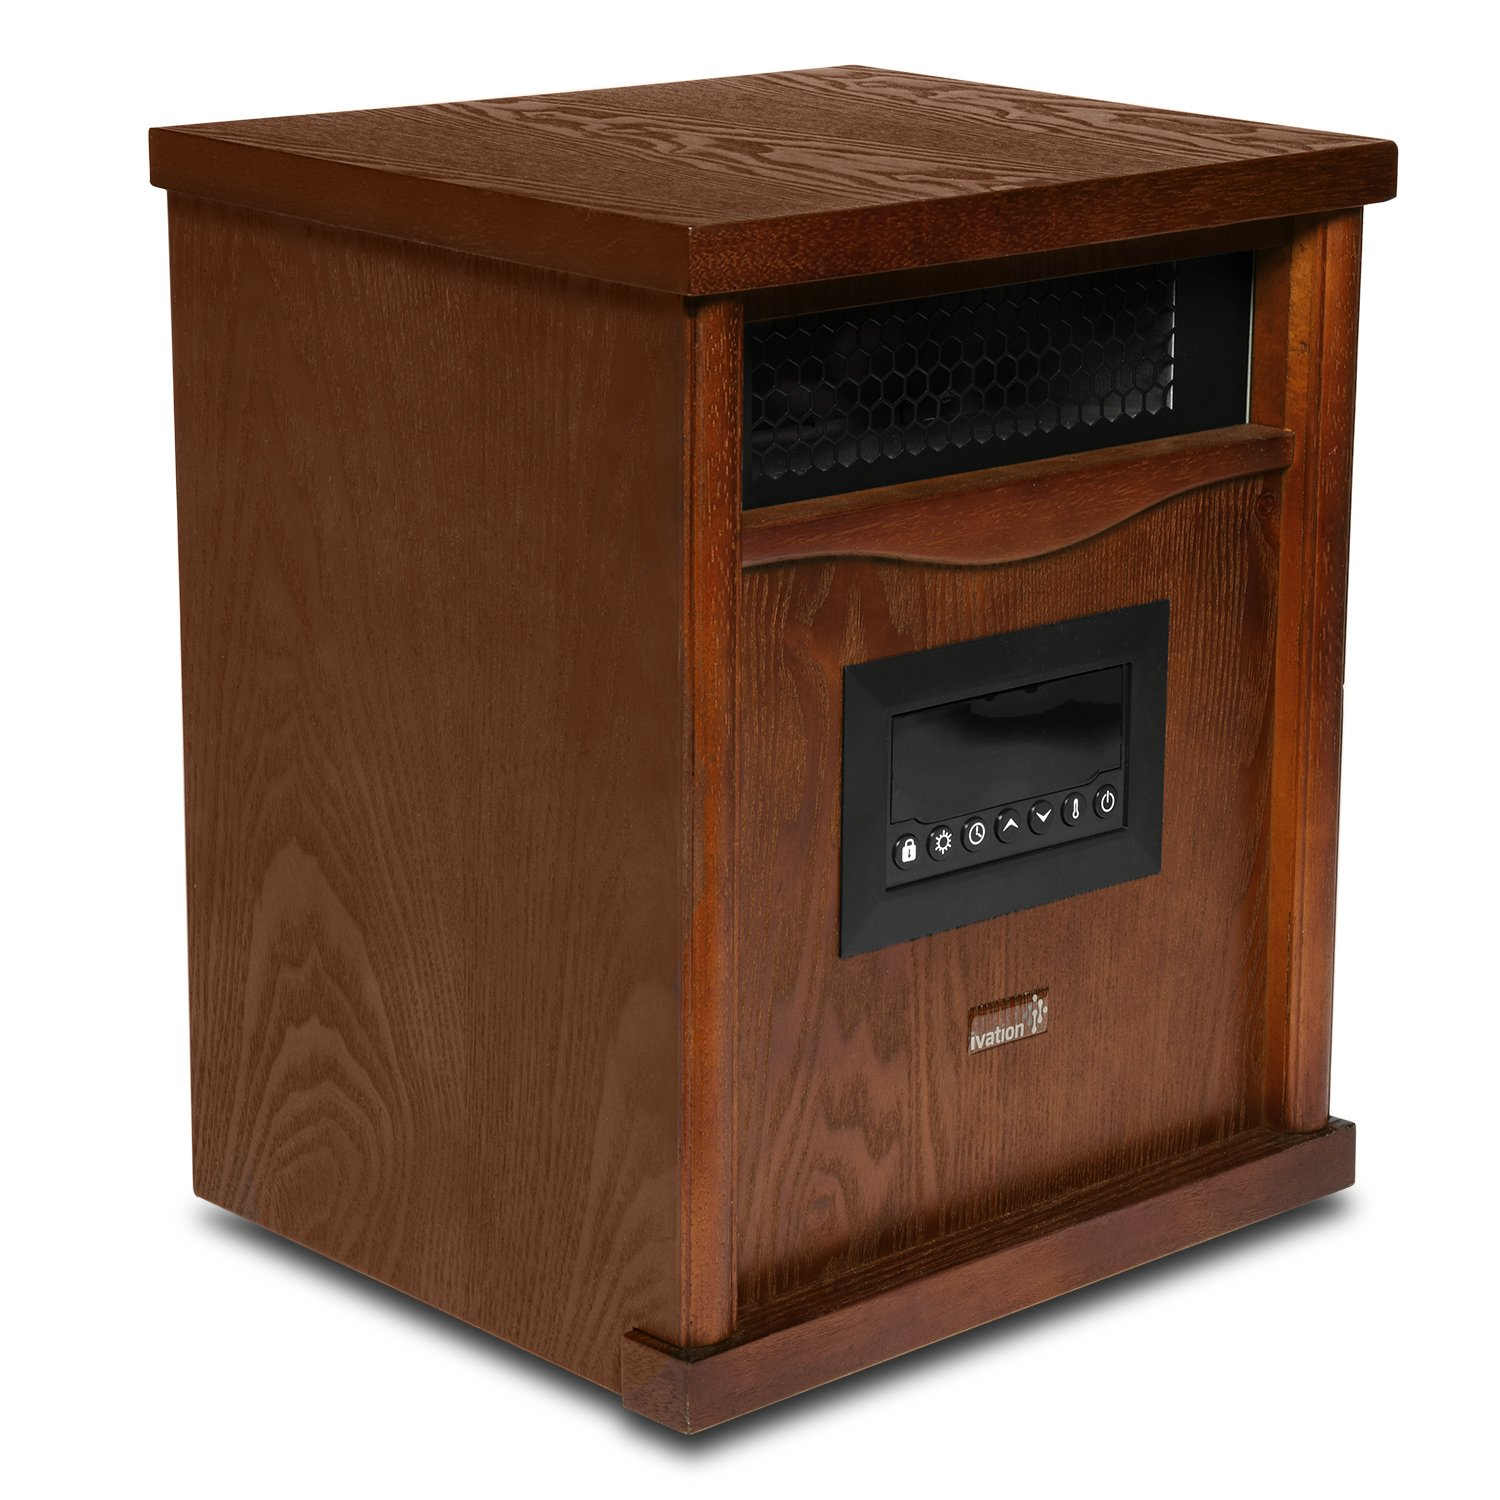 Ivation Portable Electric Space Heater, 1500-Watt 6-Element Infrared Quartz Mini Heater With Digital Thermostat, Remote Control, Timer & Filter by Ivation (Image #2)